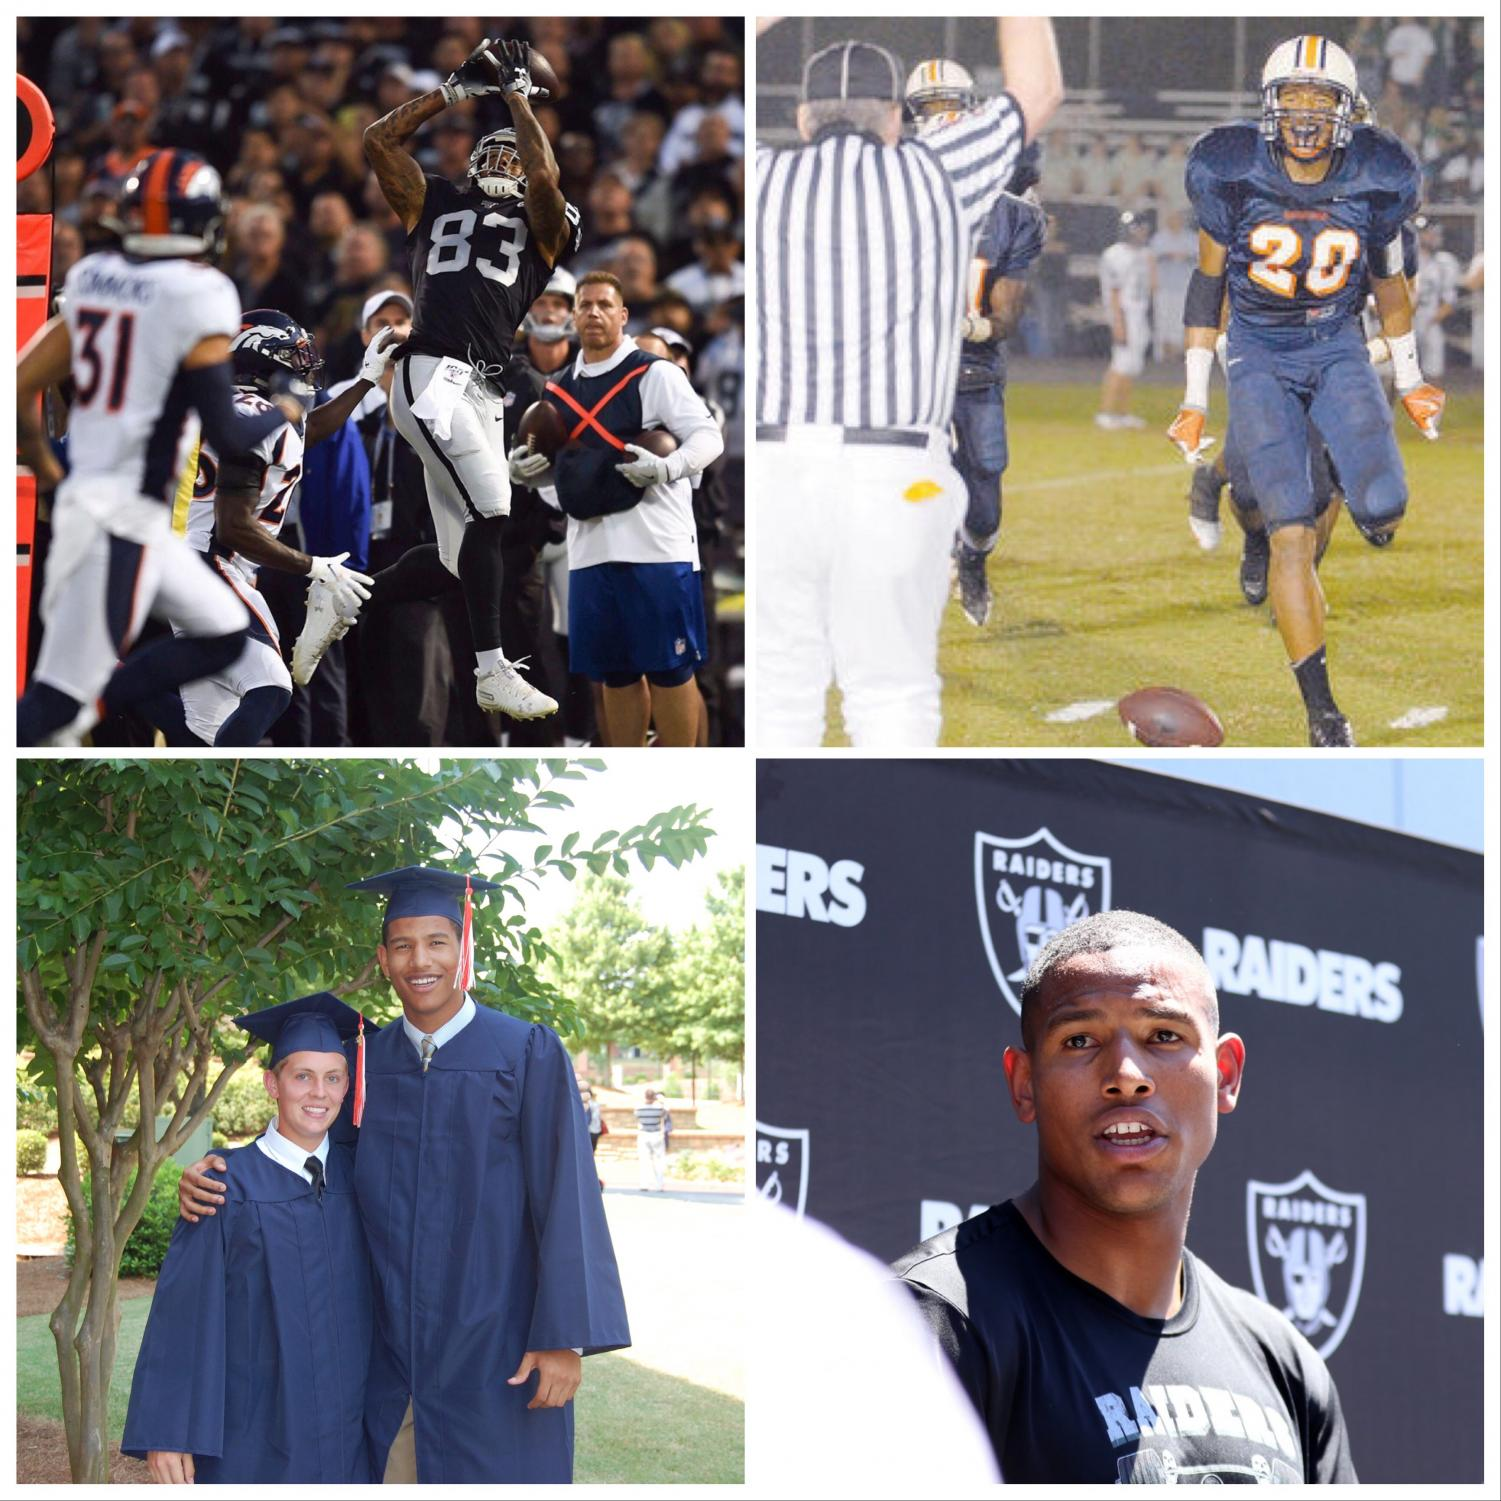 """Darren Waller, former NC student-athlete, graduated with an athletic scholarship to Georgia Tech, eventually being drafted by the Baltimore Ravens into the NFL. clockwise from top right: playing in a playoff game in Emory Sewell Stadium, Waller approaches the bright lights of the NFL stage playing for the Oakland Raiders,  at graduation alongside Evan Stack, another NC alum, and now regularly playing with the Raiders.  Waller credits much of his preparation to his time at NC. """"I play a lot of Madden NFL 20, and I'm really excited to use Darren Waller on the Raiders. It's super cool that he played here at North Cobb and made it big in the NFL,"""" junior Brendan Koch said."""